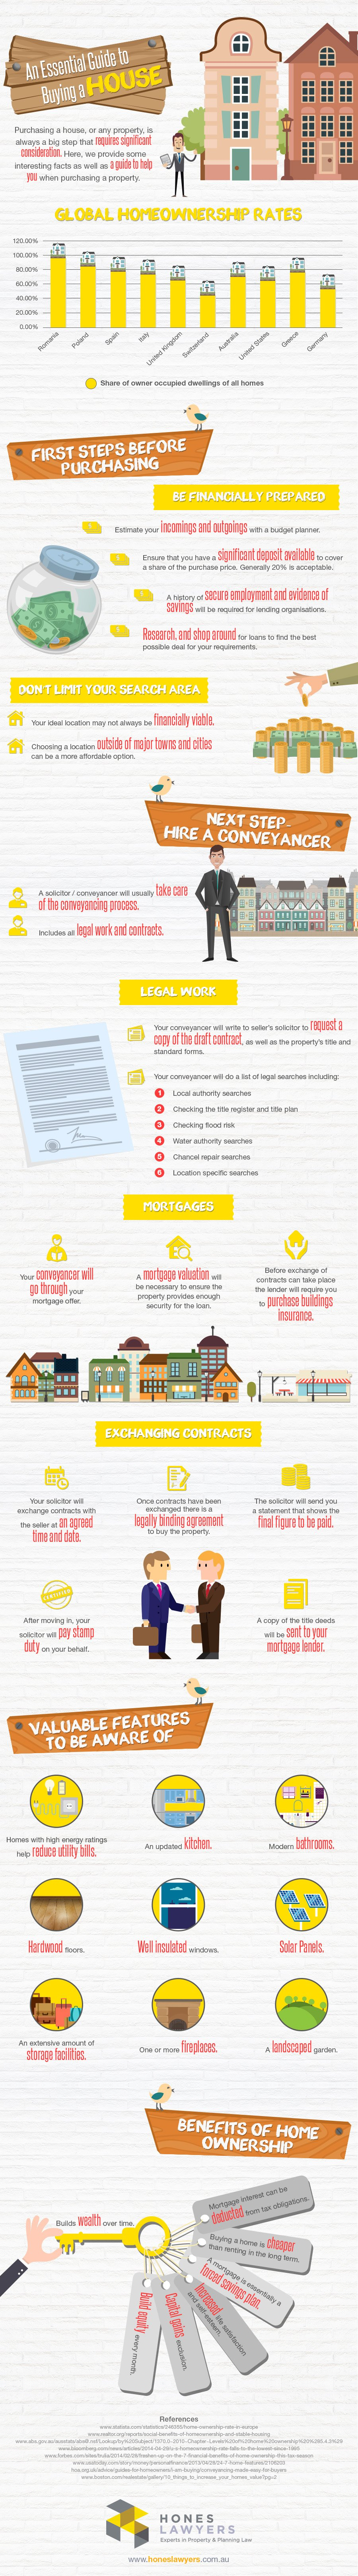 Essential-Guide-Buying-House